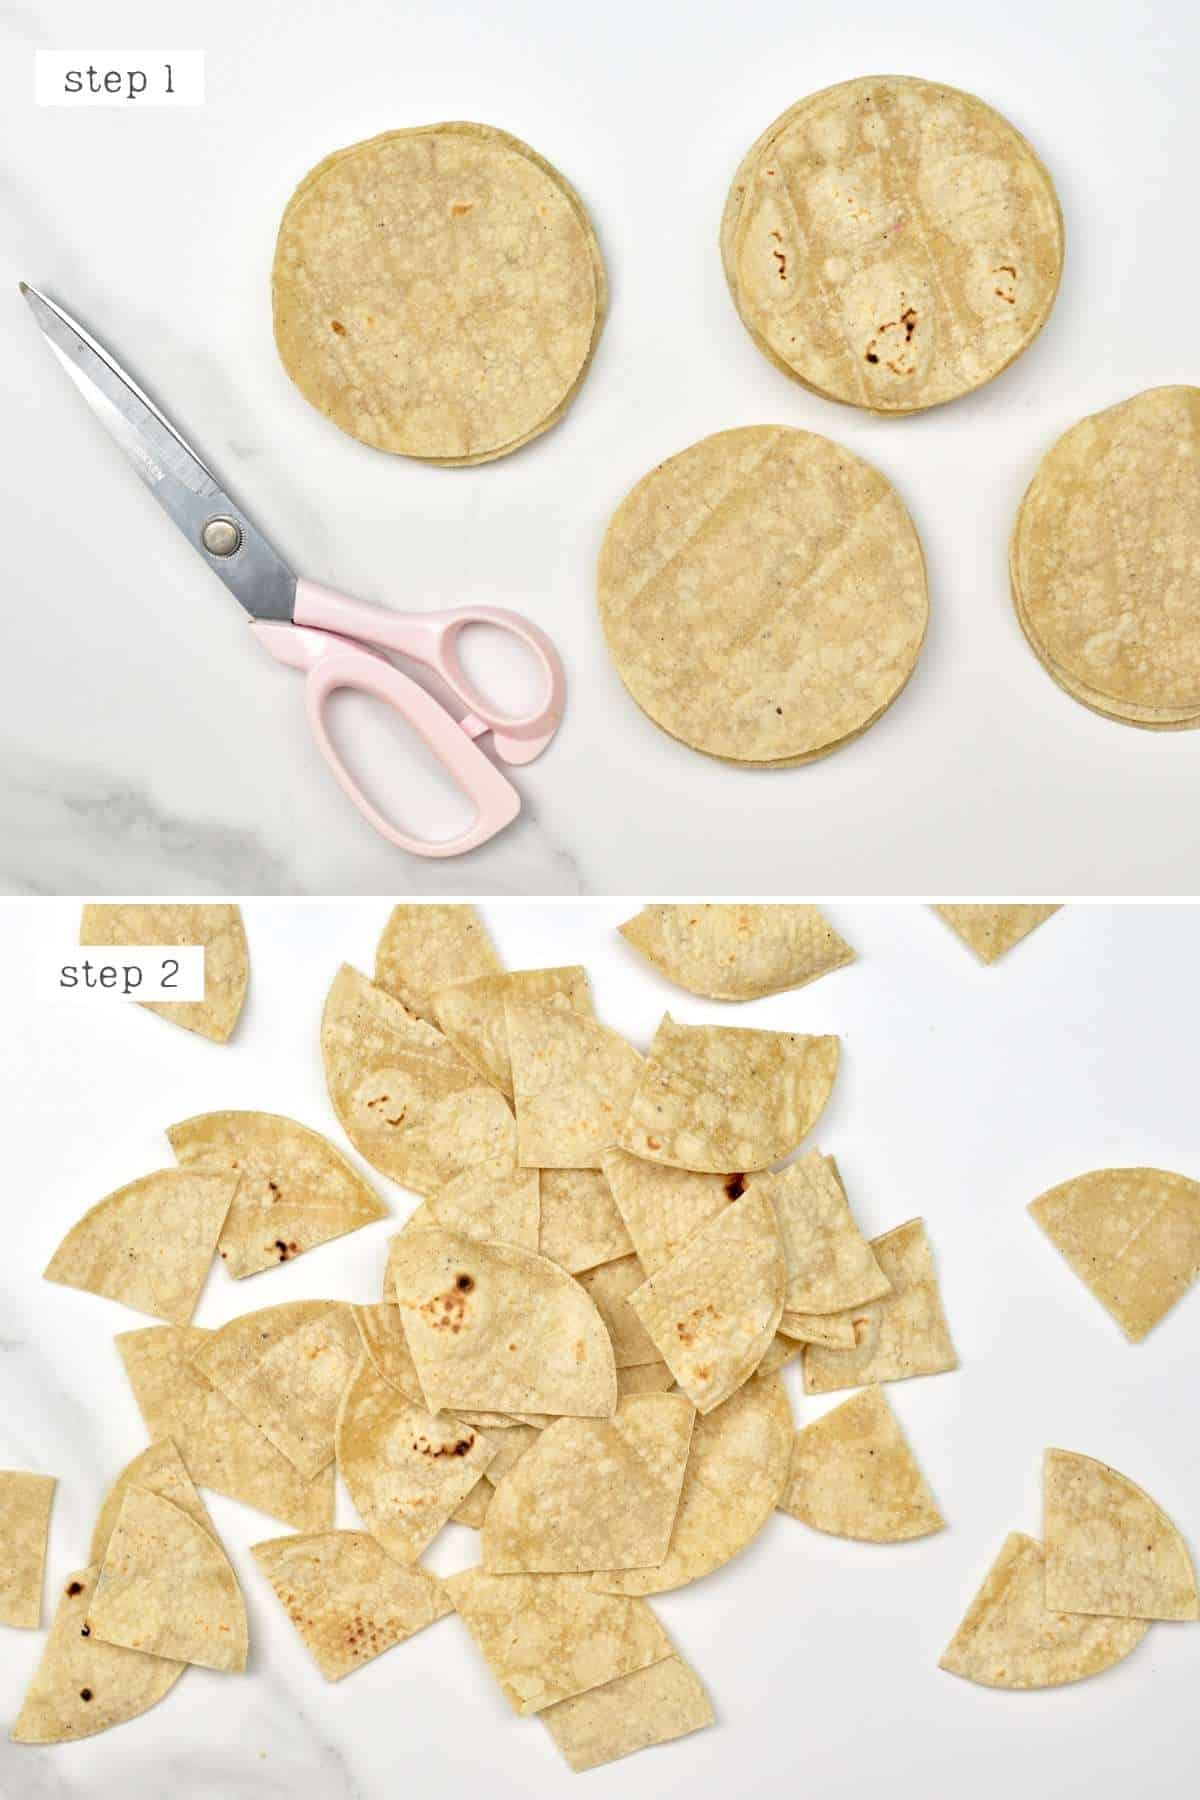 Steps for cutting tortilla chips